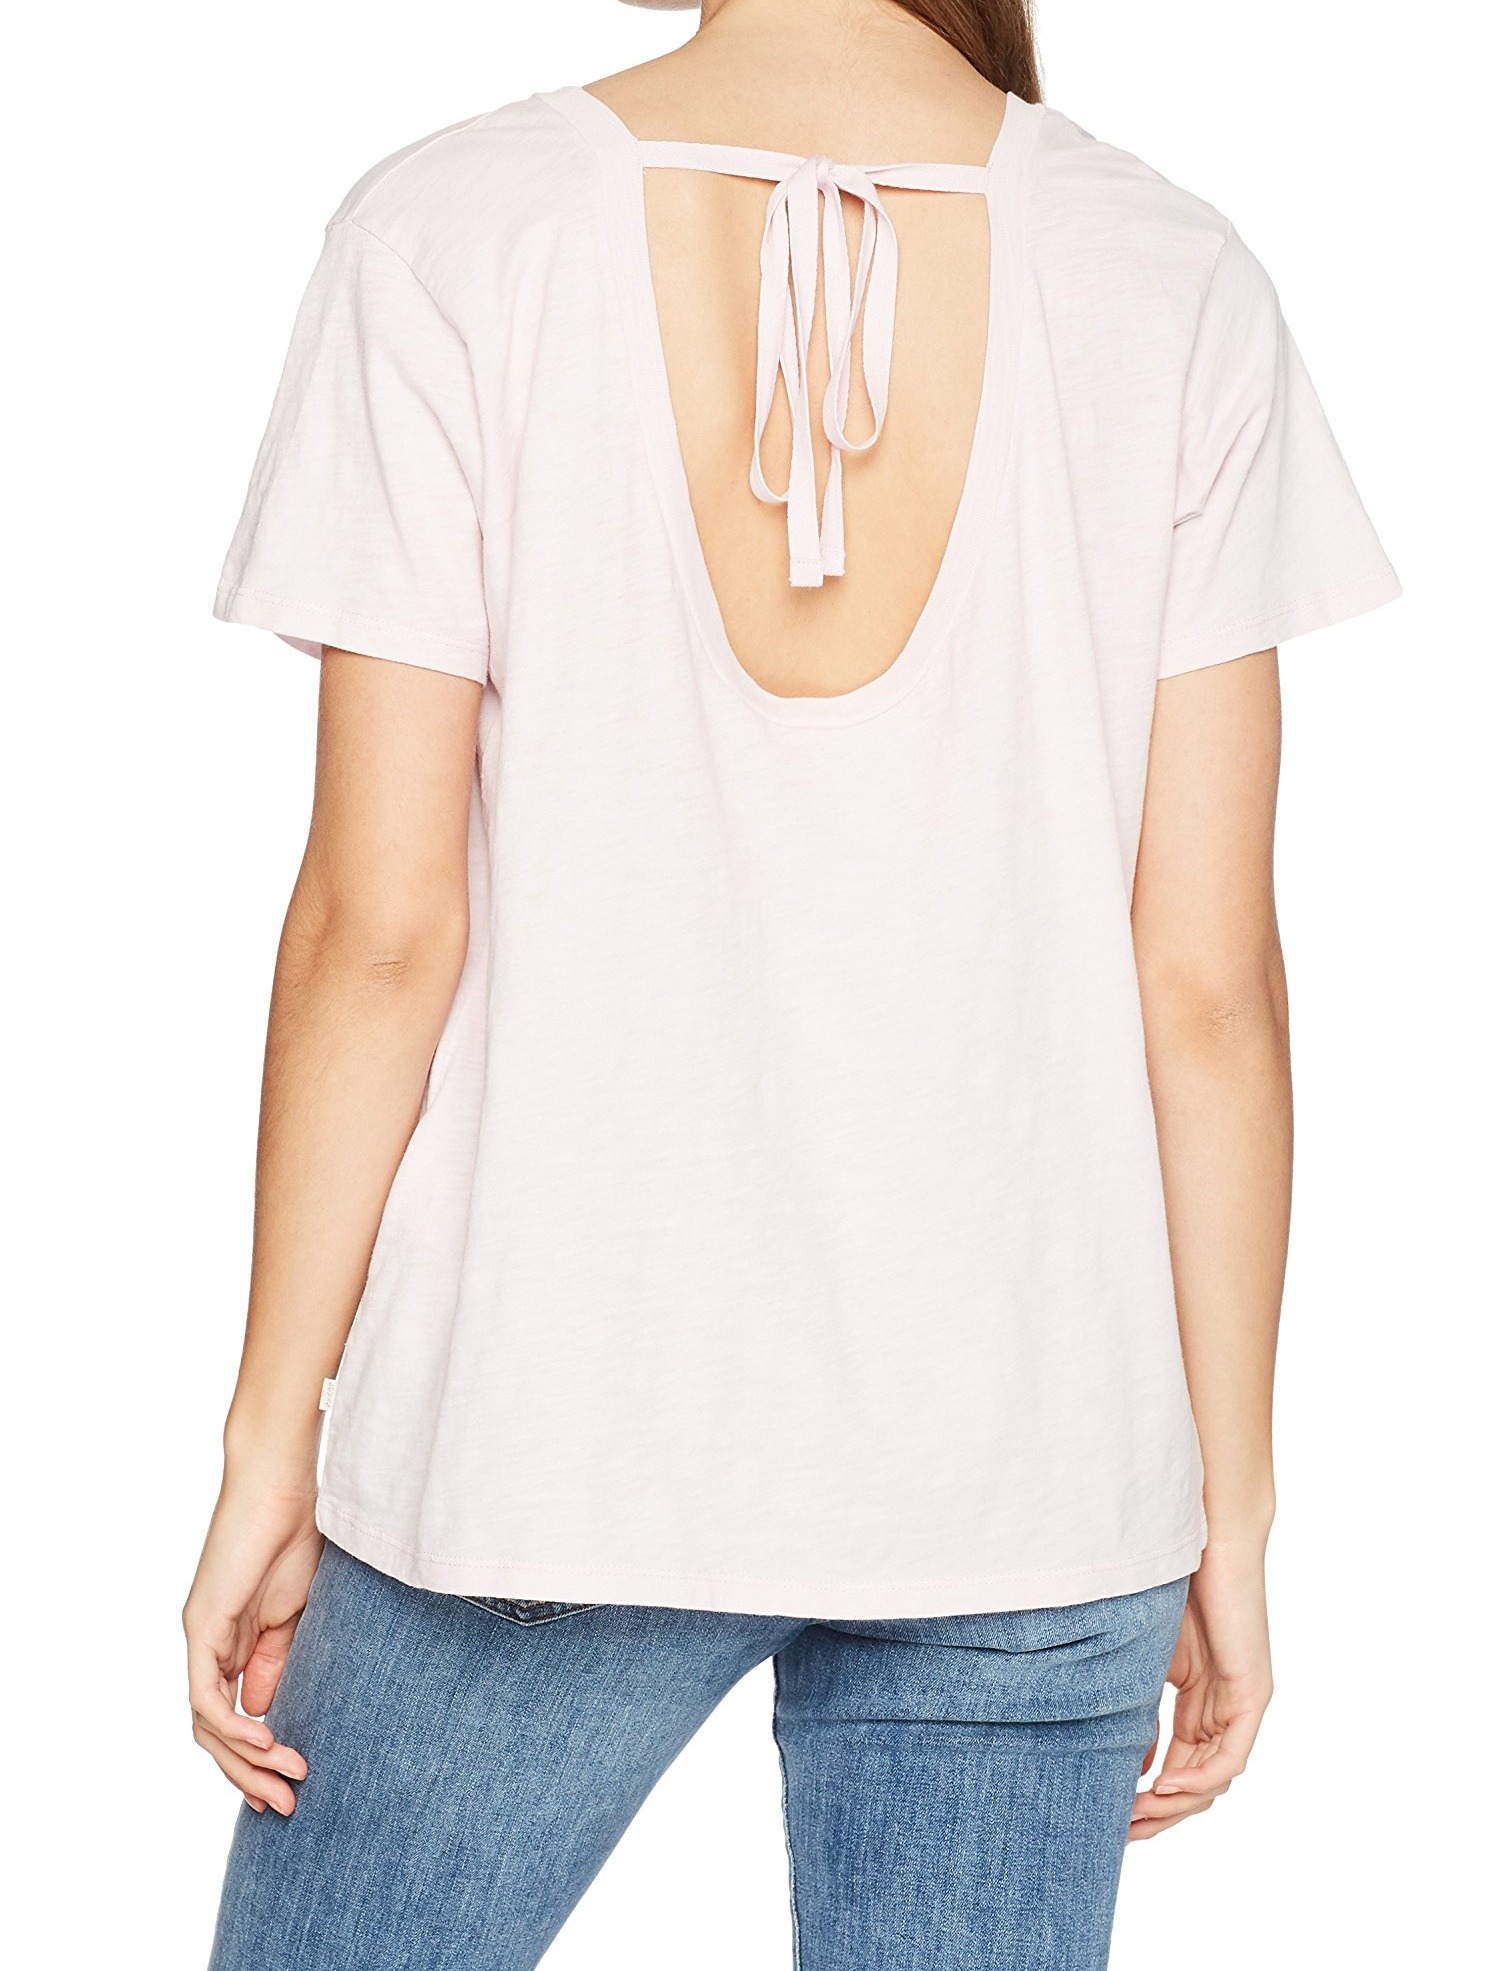 Levi-039-s-Women-039-s-Top-Blouse-Pink-Size-Small-S-Knit-Tee-Tie-Back-T-Shirt-346 thumbnail 2